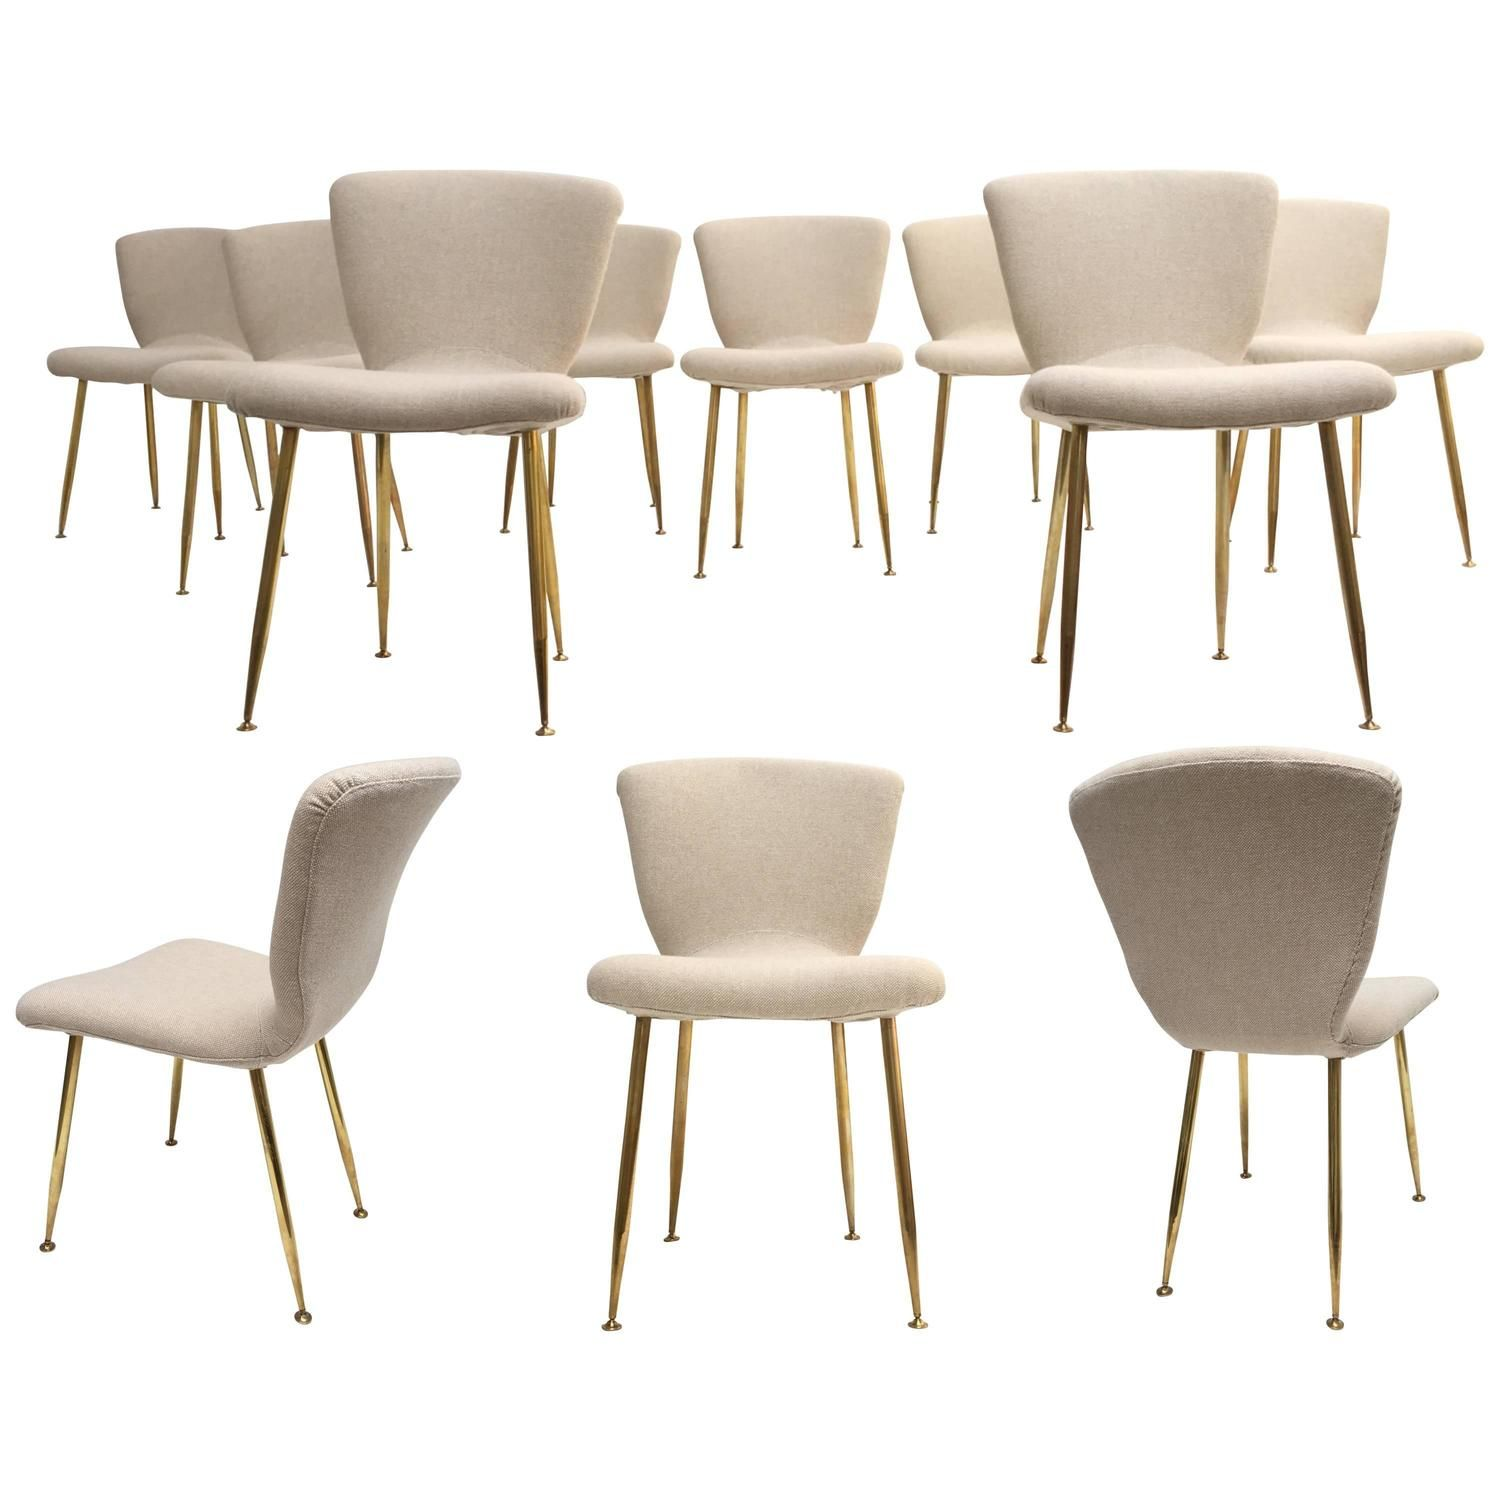 Stunning set of 12 dining chairs by Louis Sognot for ARFLEX,Italy 1959. RESTORED